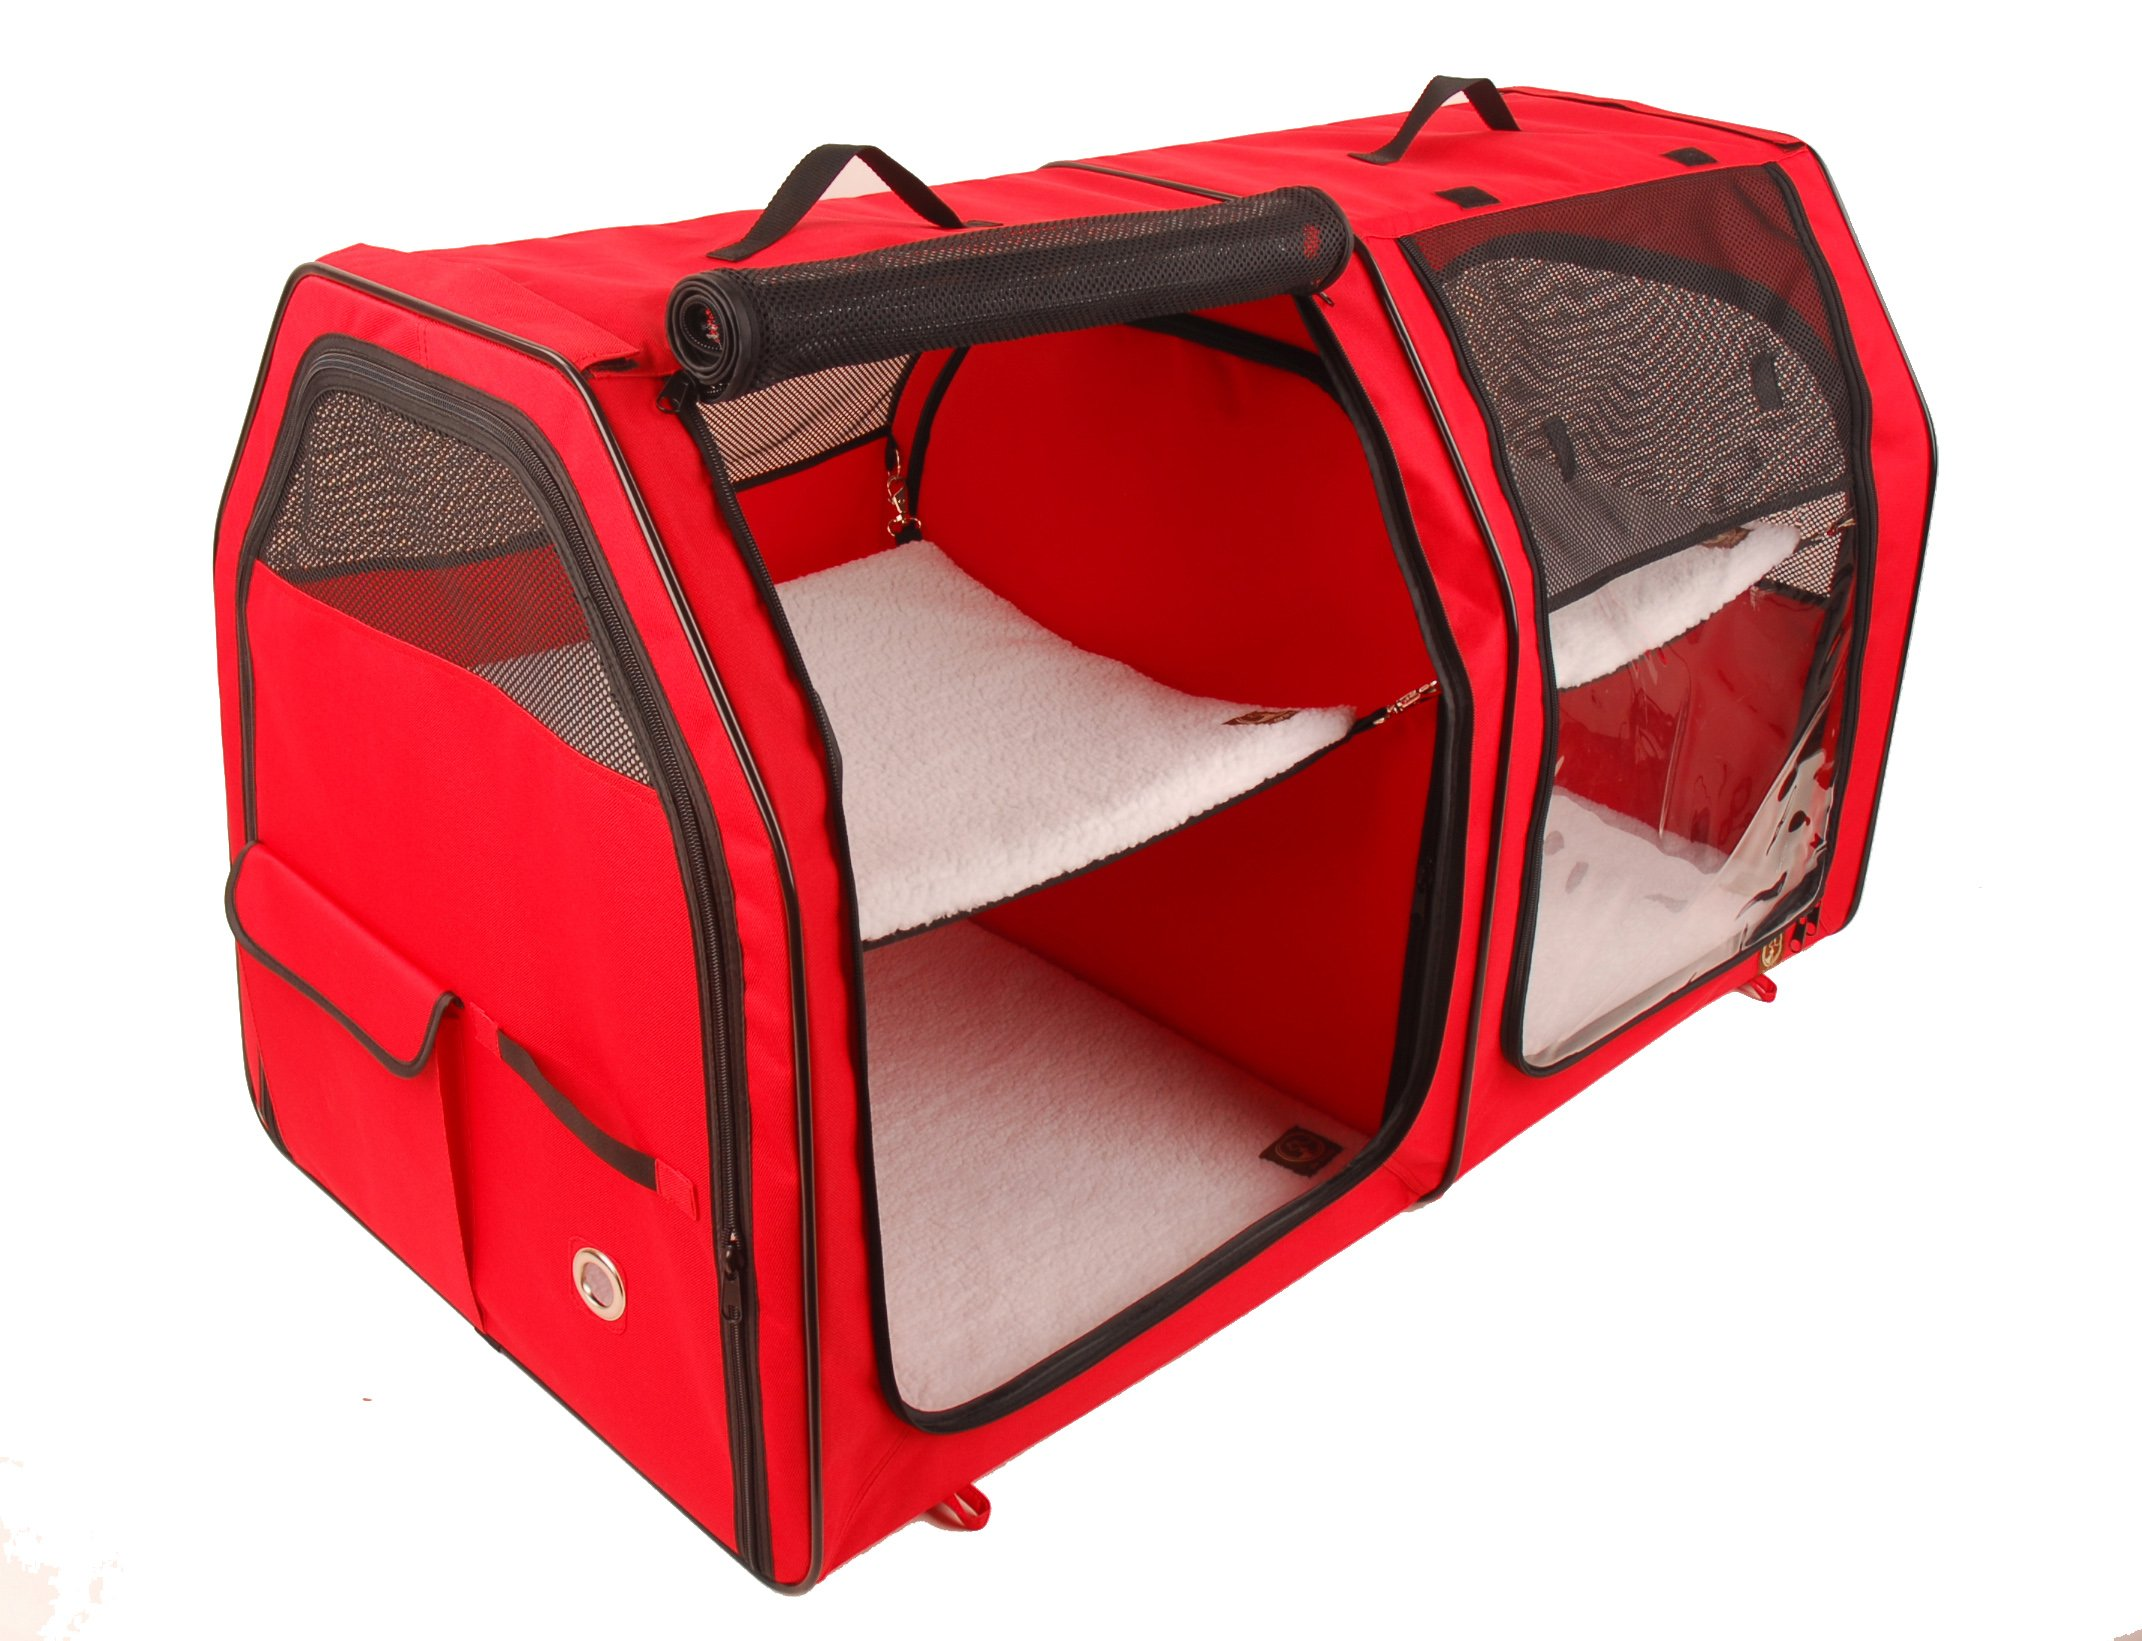 One for Pets Double Cat Show House / Portable Dog Kennel / Shelter, Red, 24″x24″x42″ - Seat-belt Fixture Included